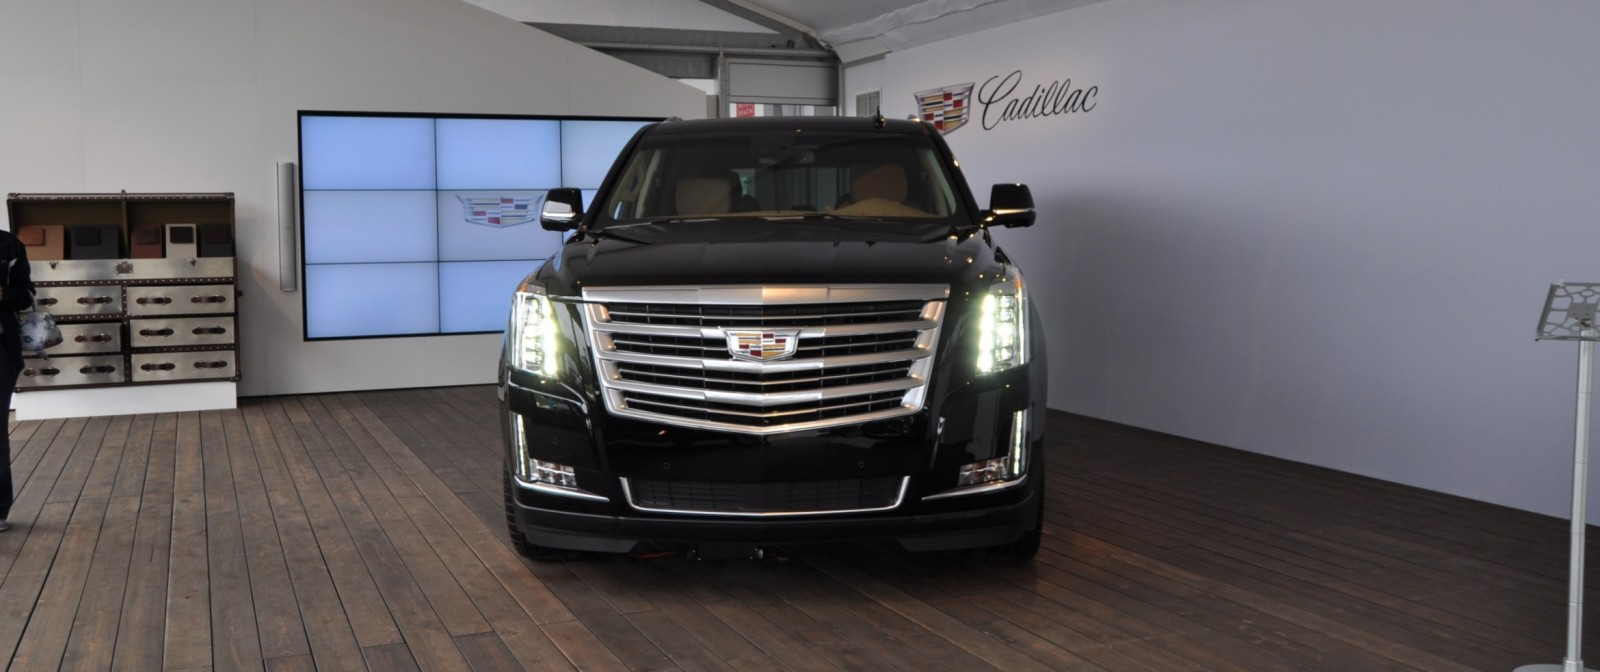 2015 Cadillac Escalade Platinum and Standard Model Unveiled for Pebble Beach 8